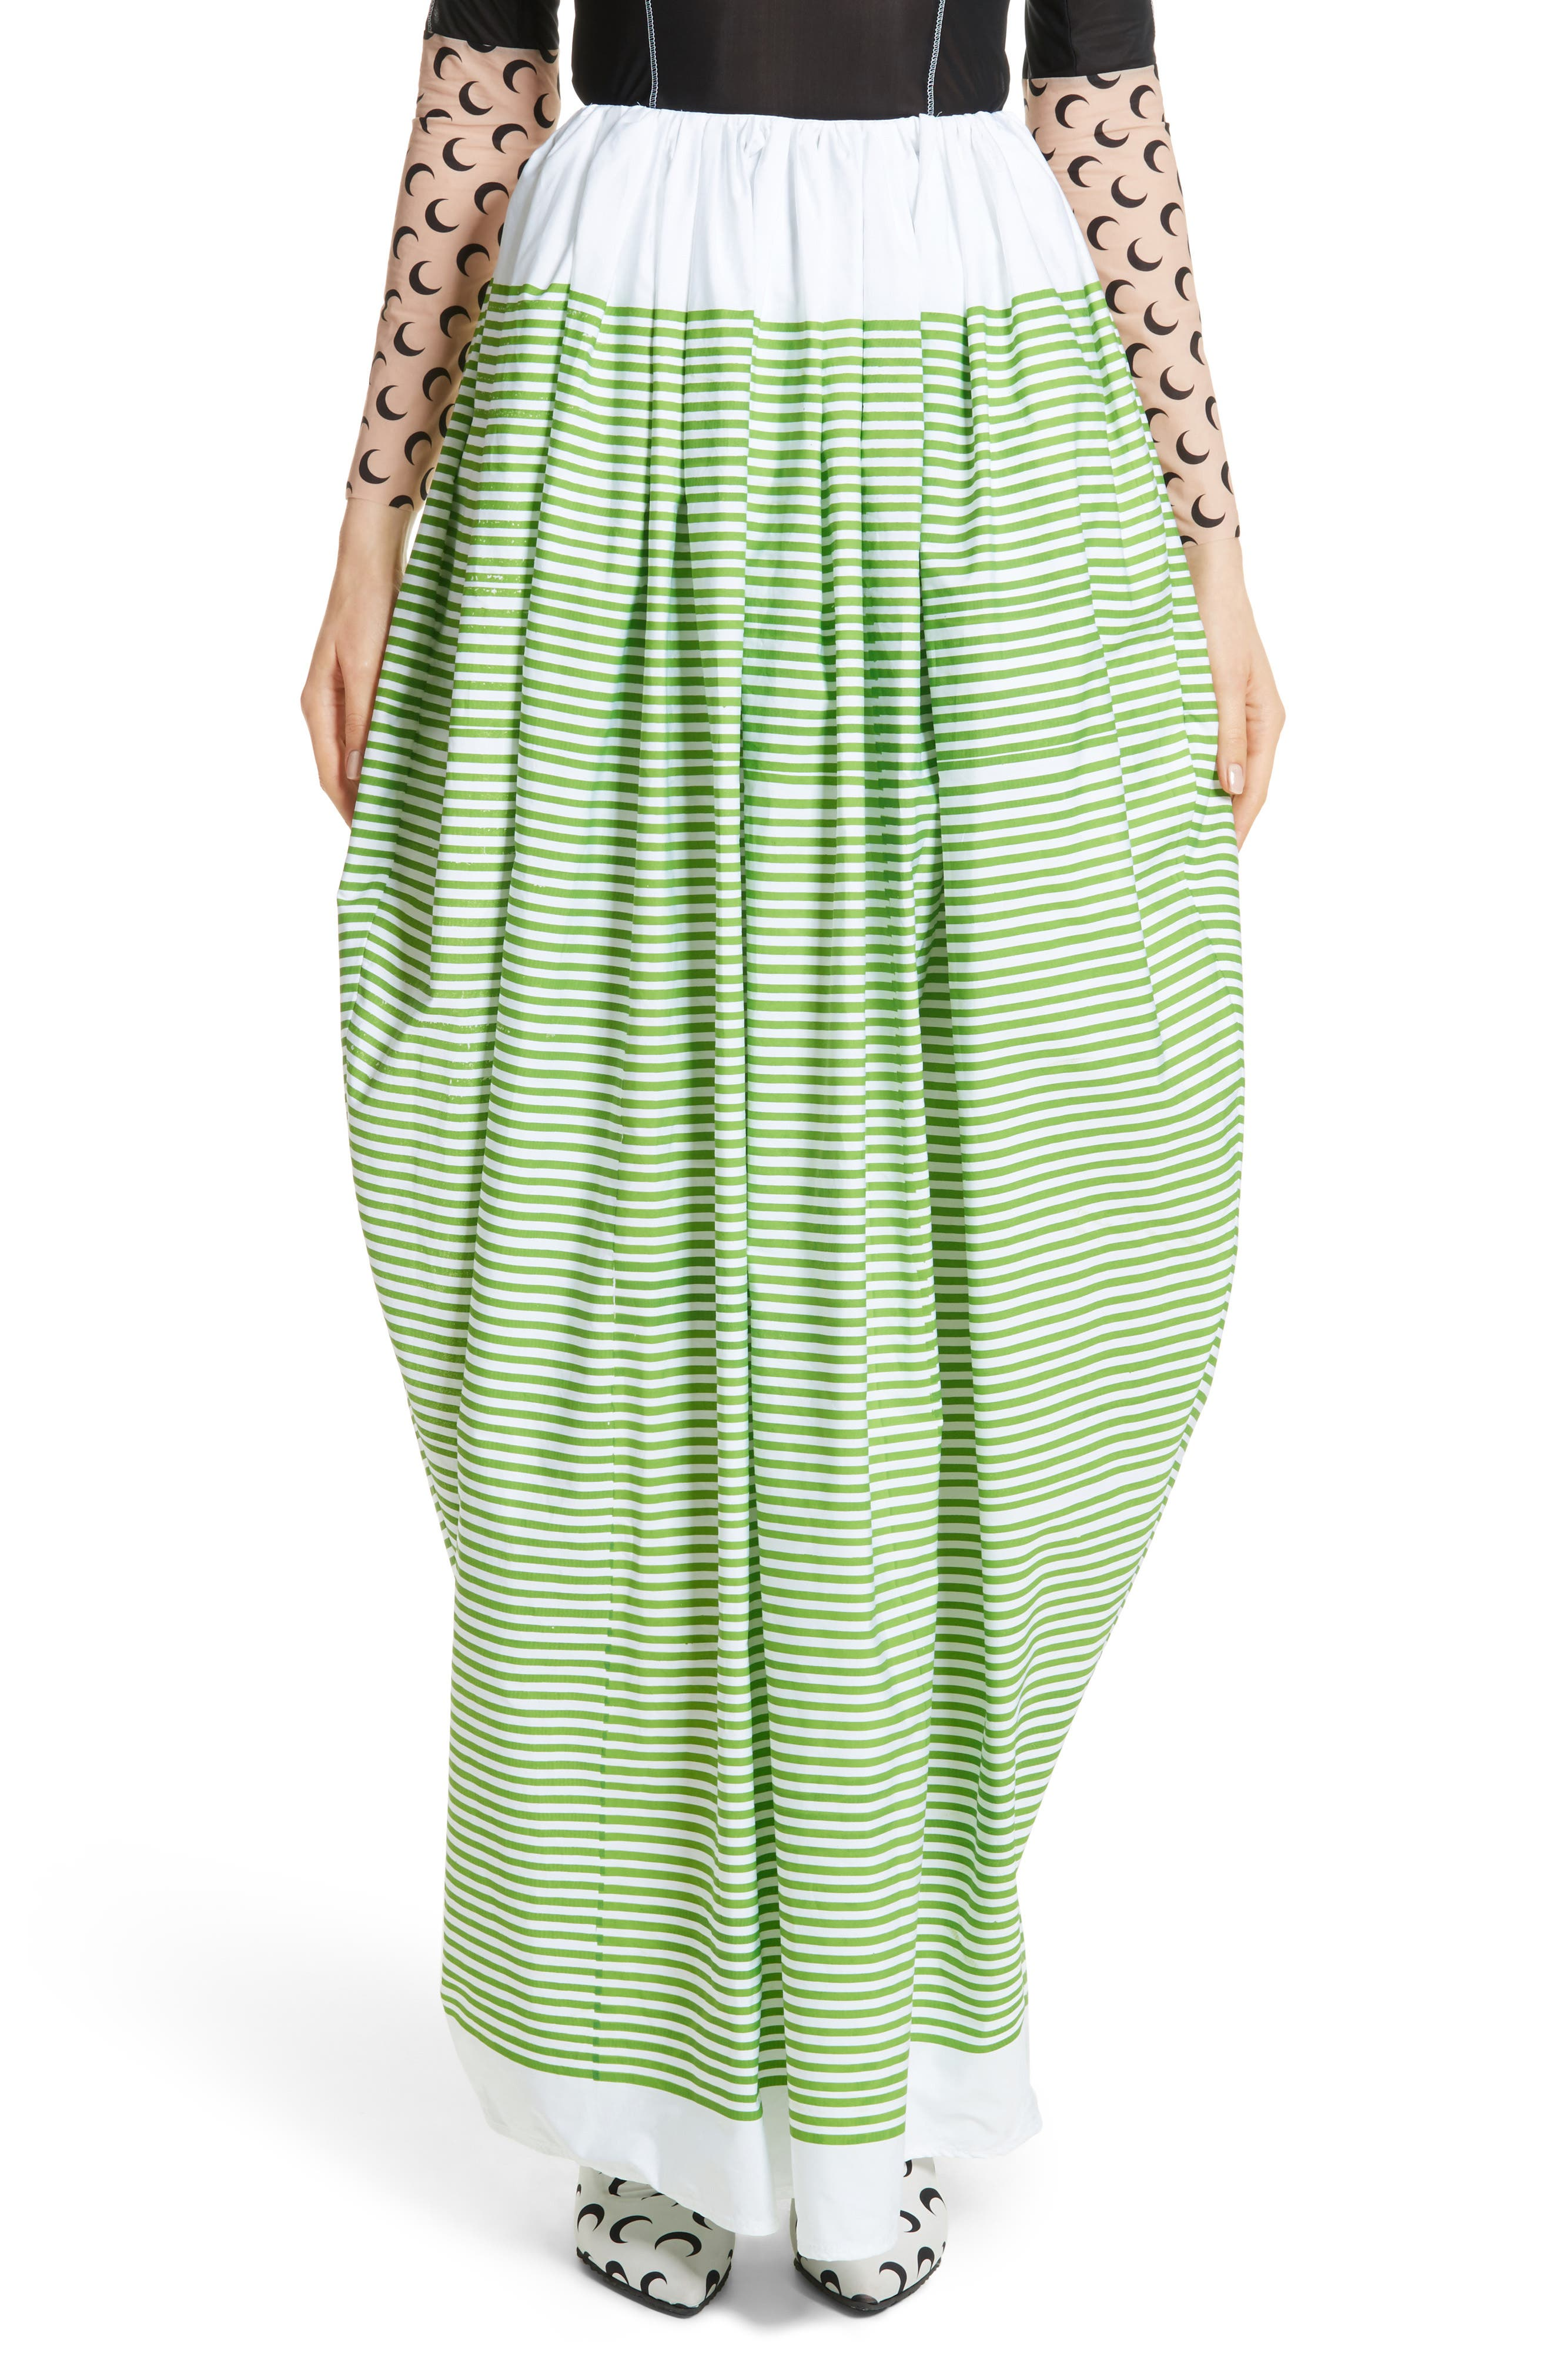 Stripe Ball Skirt,                         Main,                         color, Green Striped